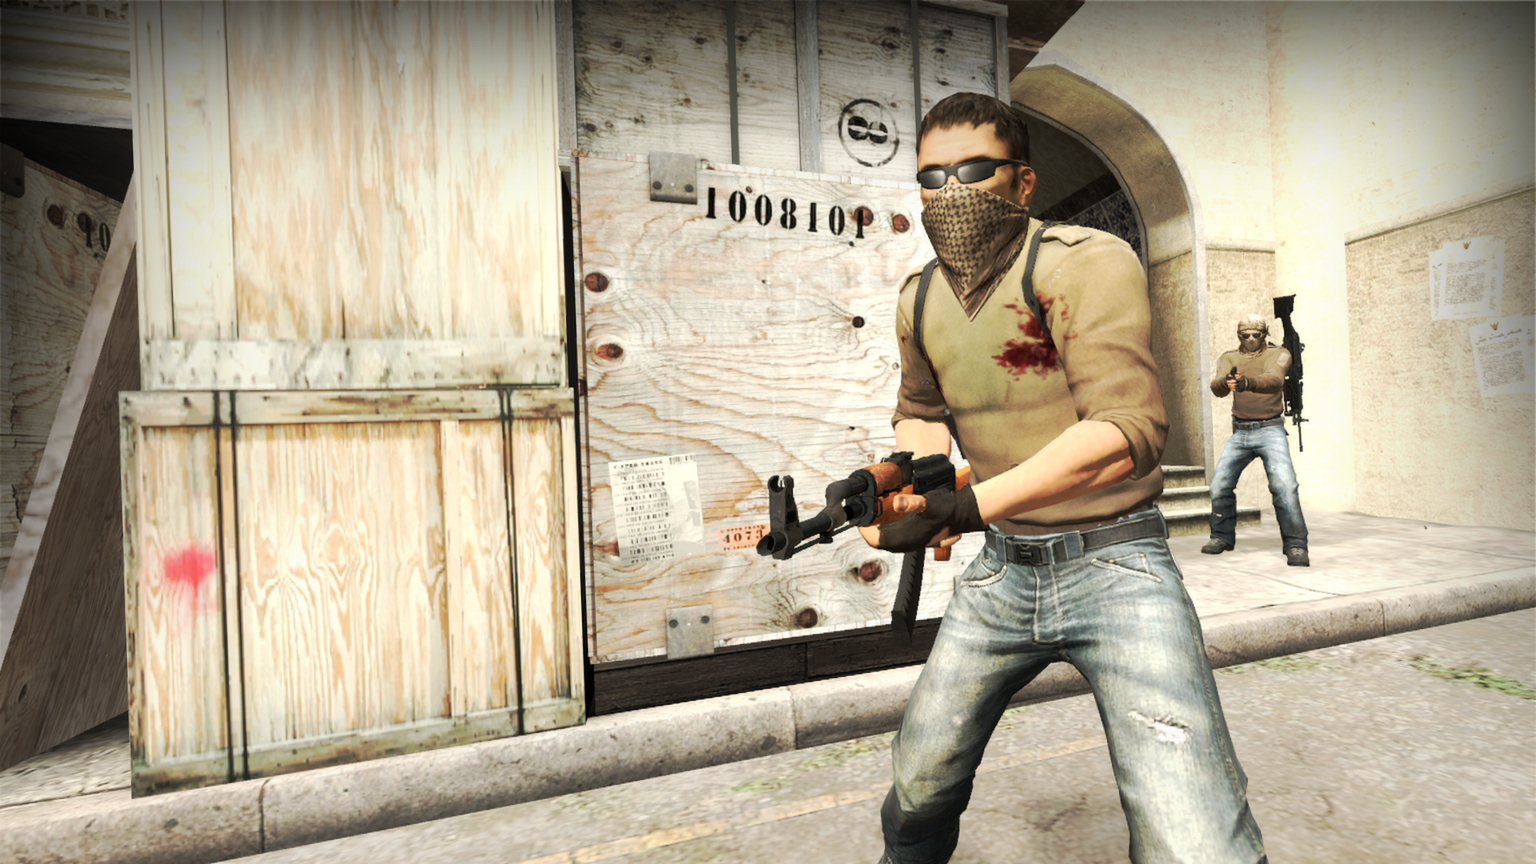 Steam account hack gives user a load of CS:GO gear